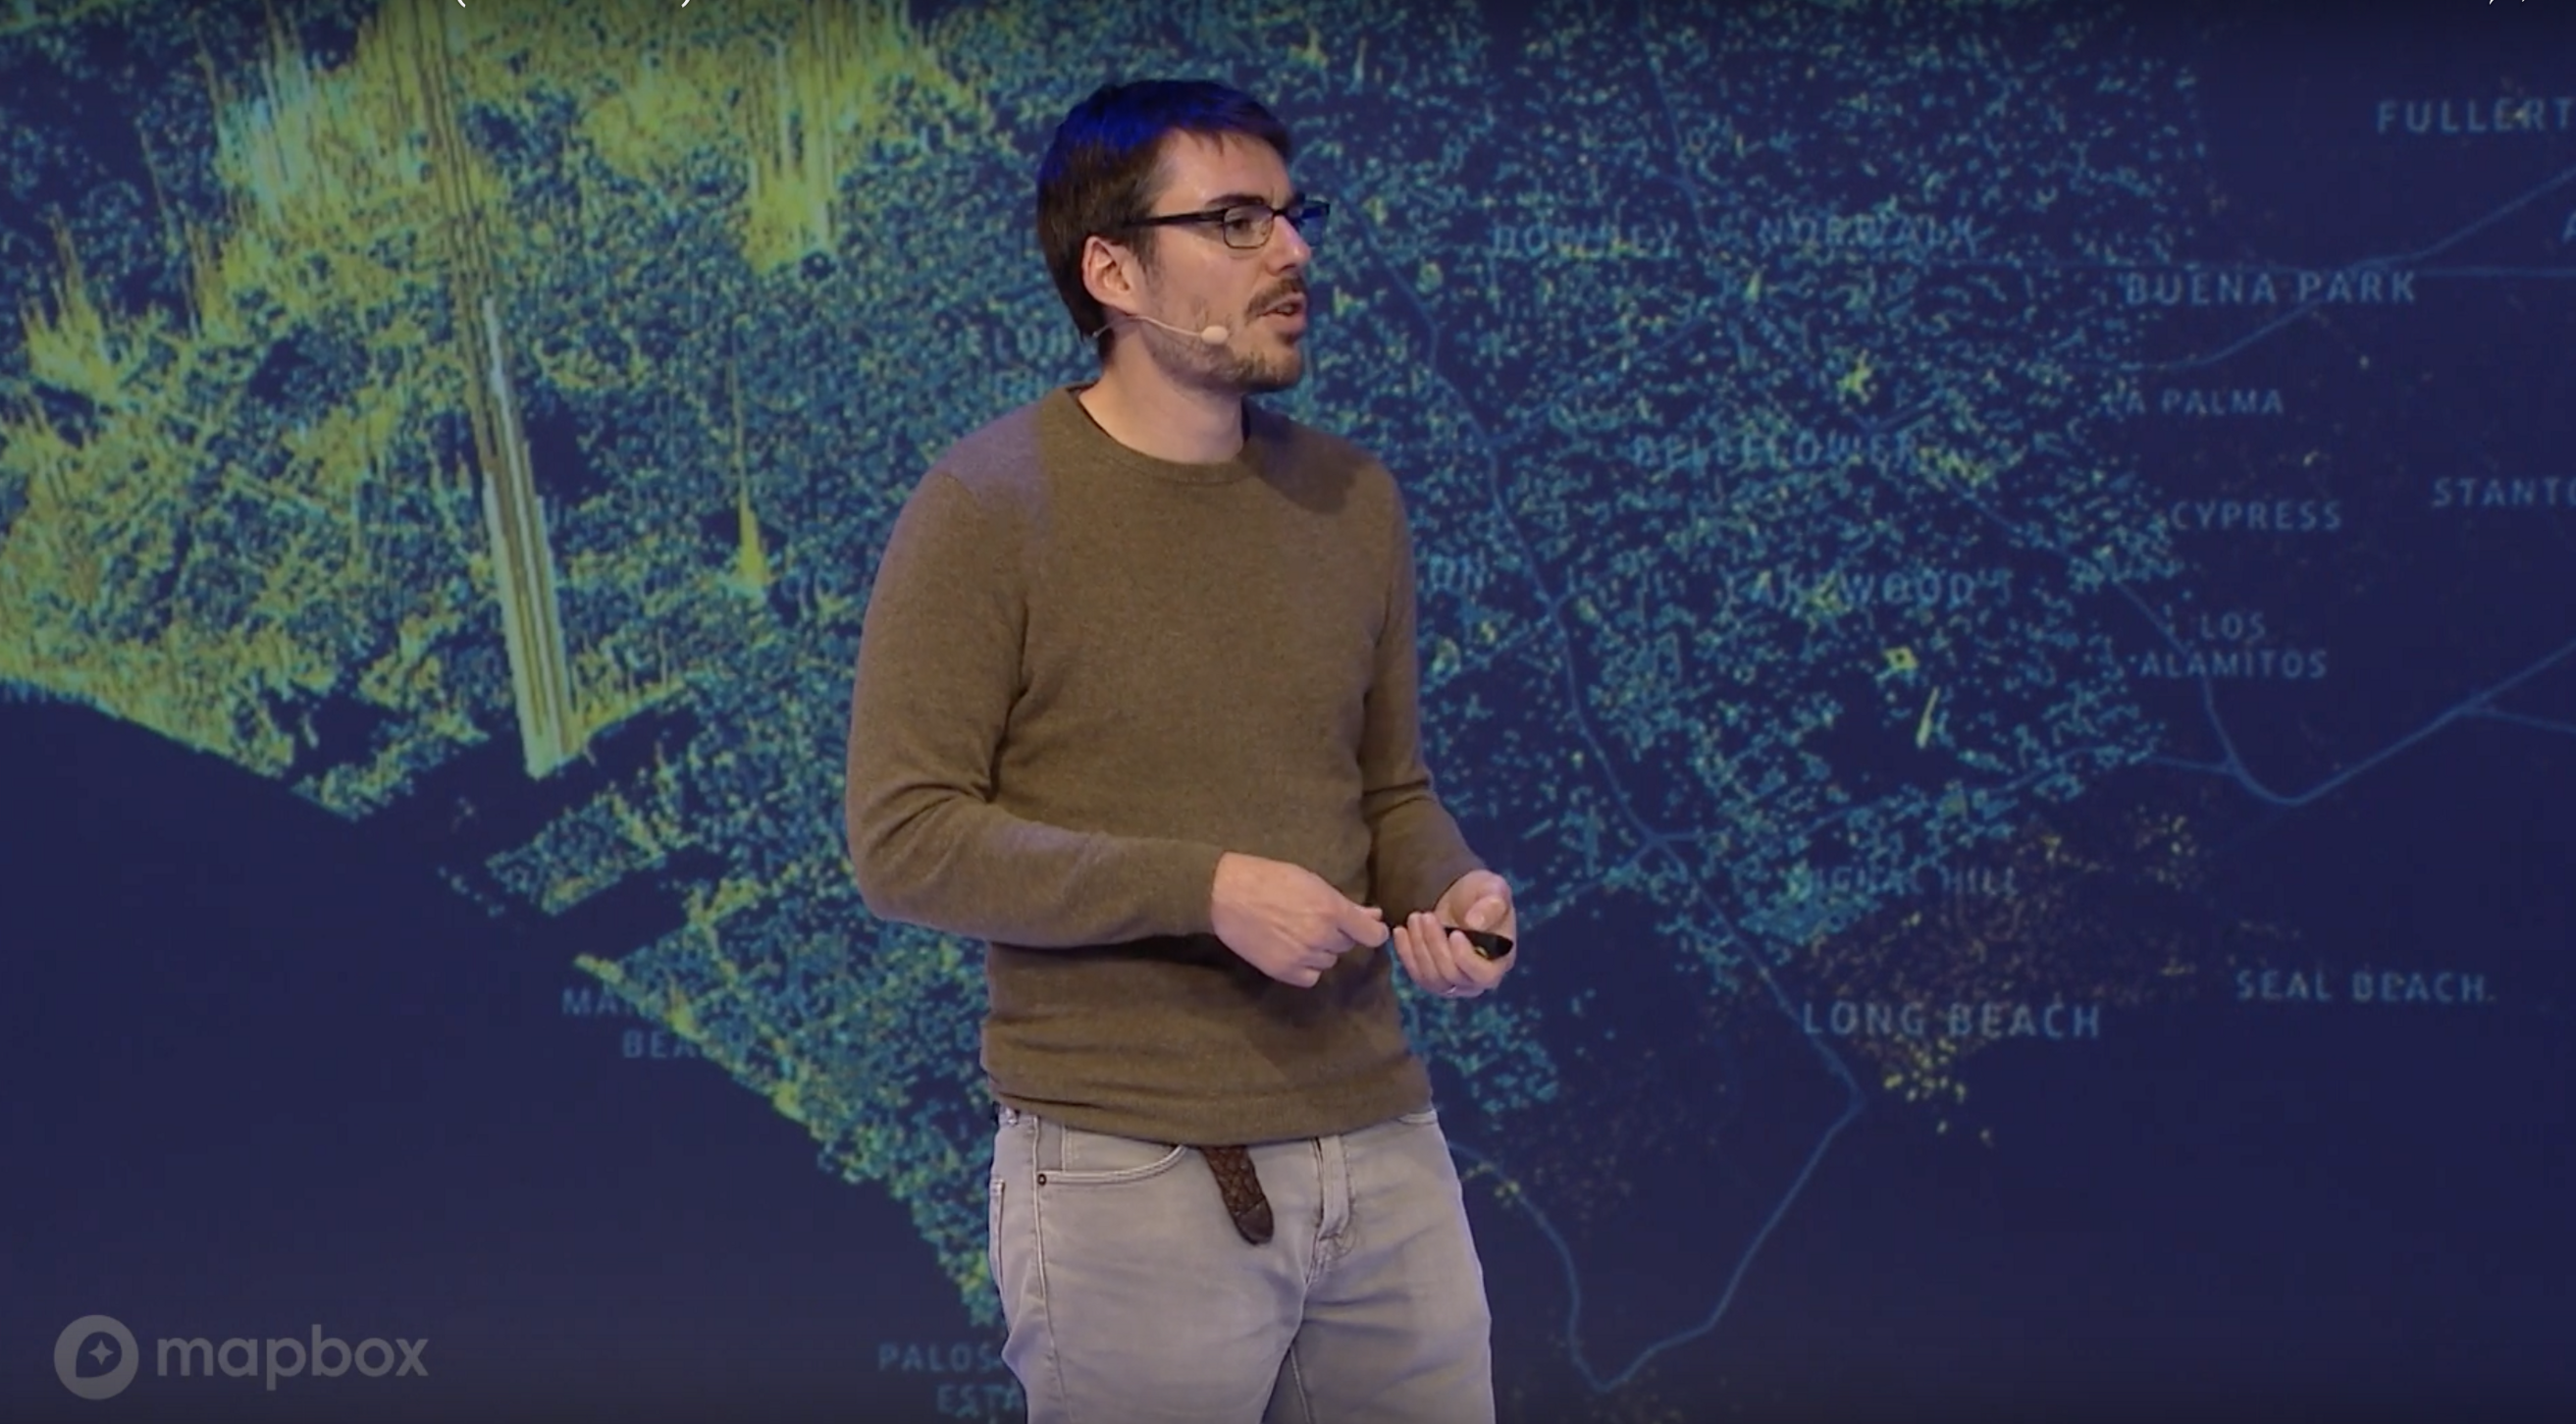 Uber's head of visualization joins Mapbox - Points of interest